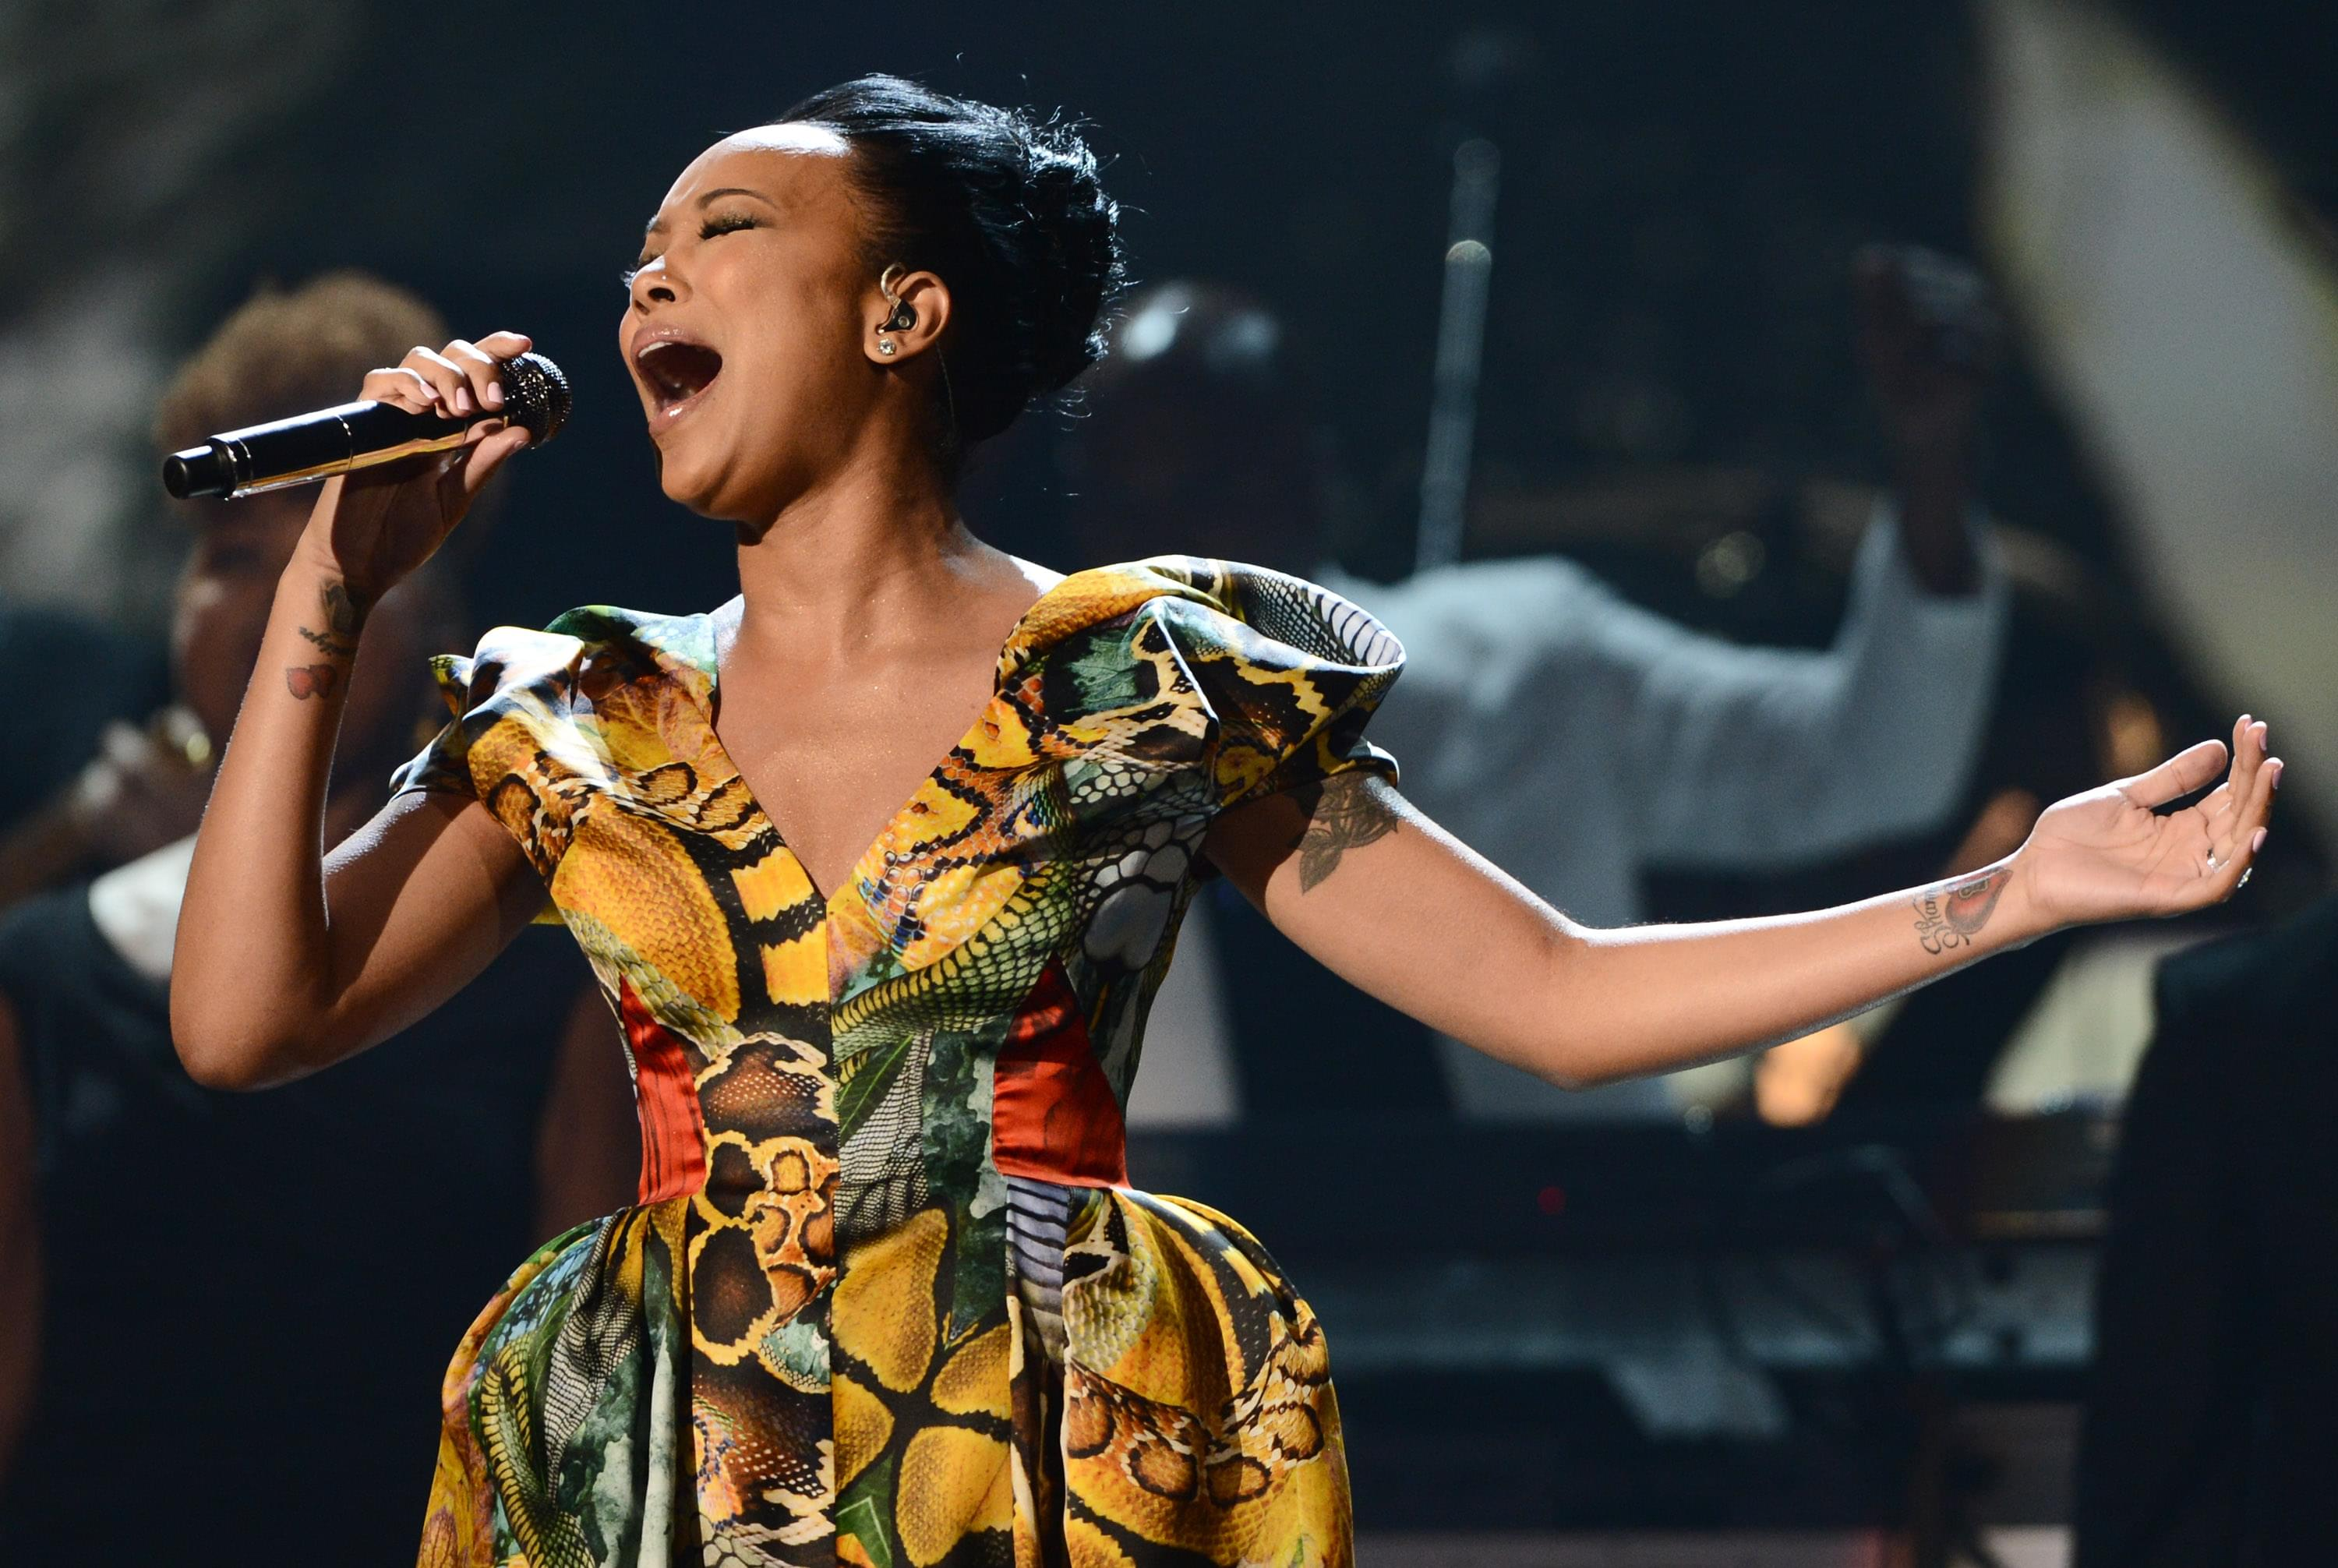 Monica Shouted Out Brandy, Calls For Unity